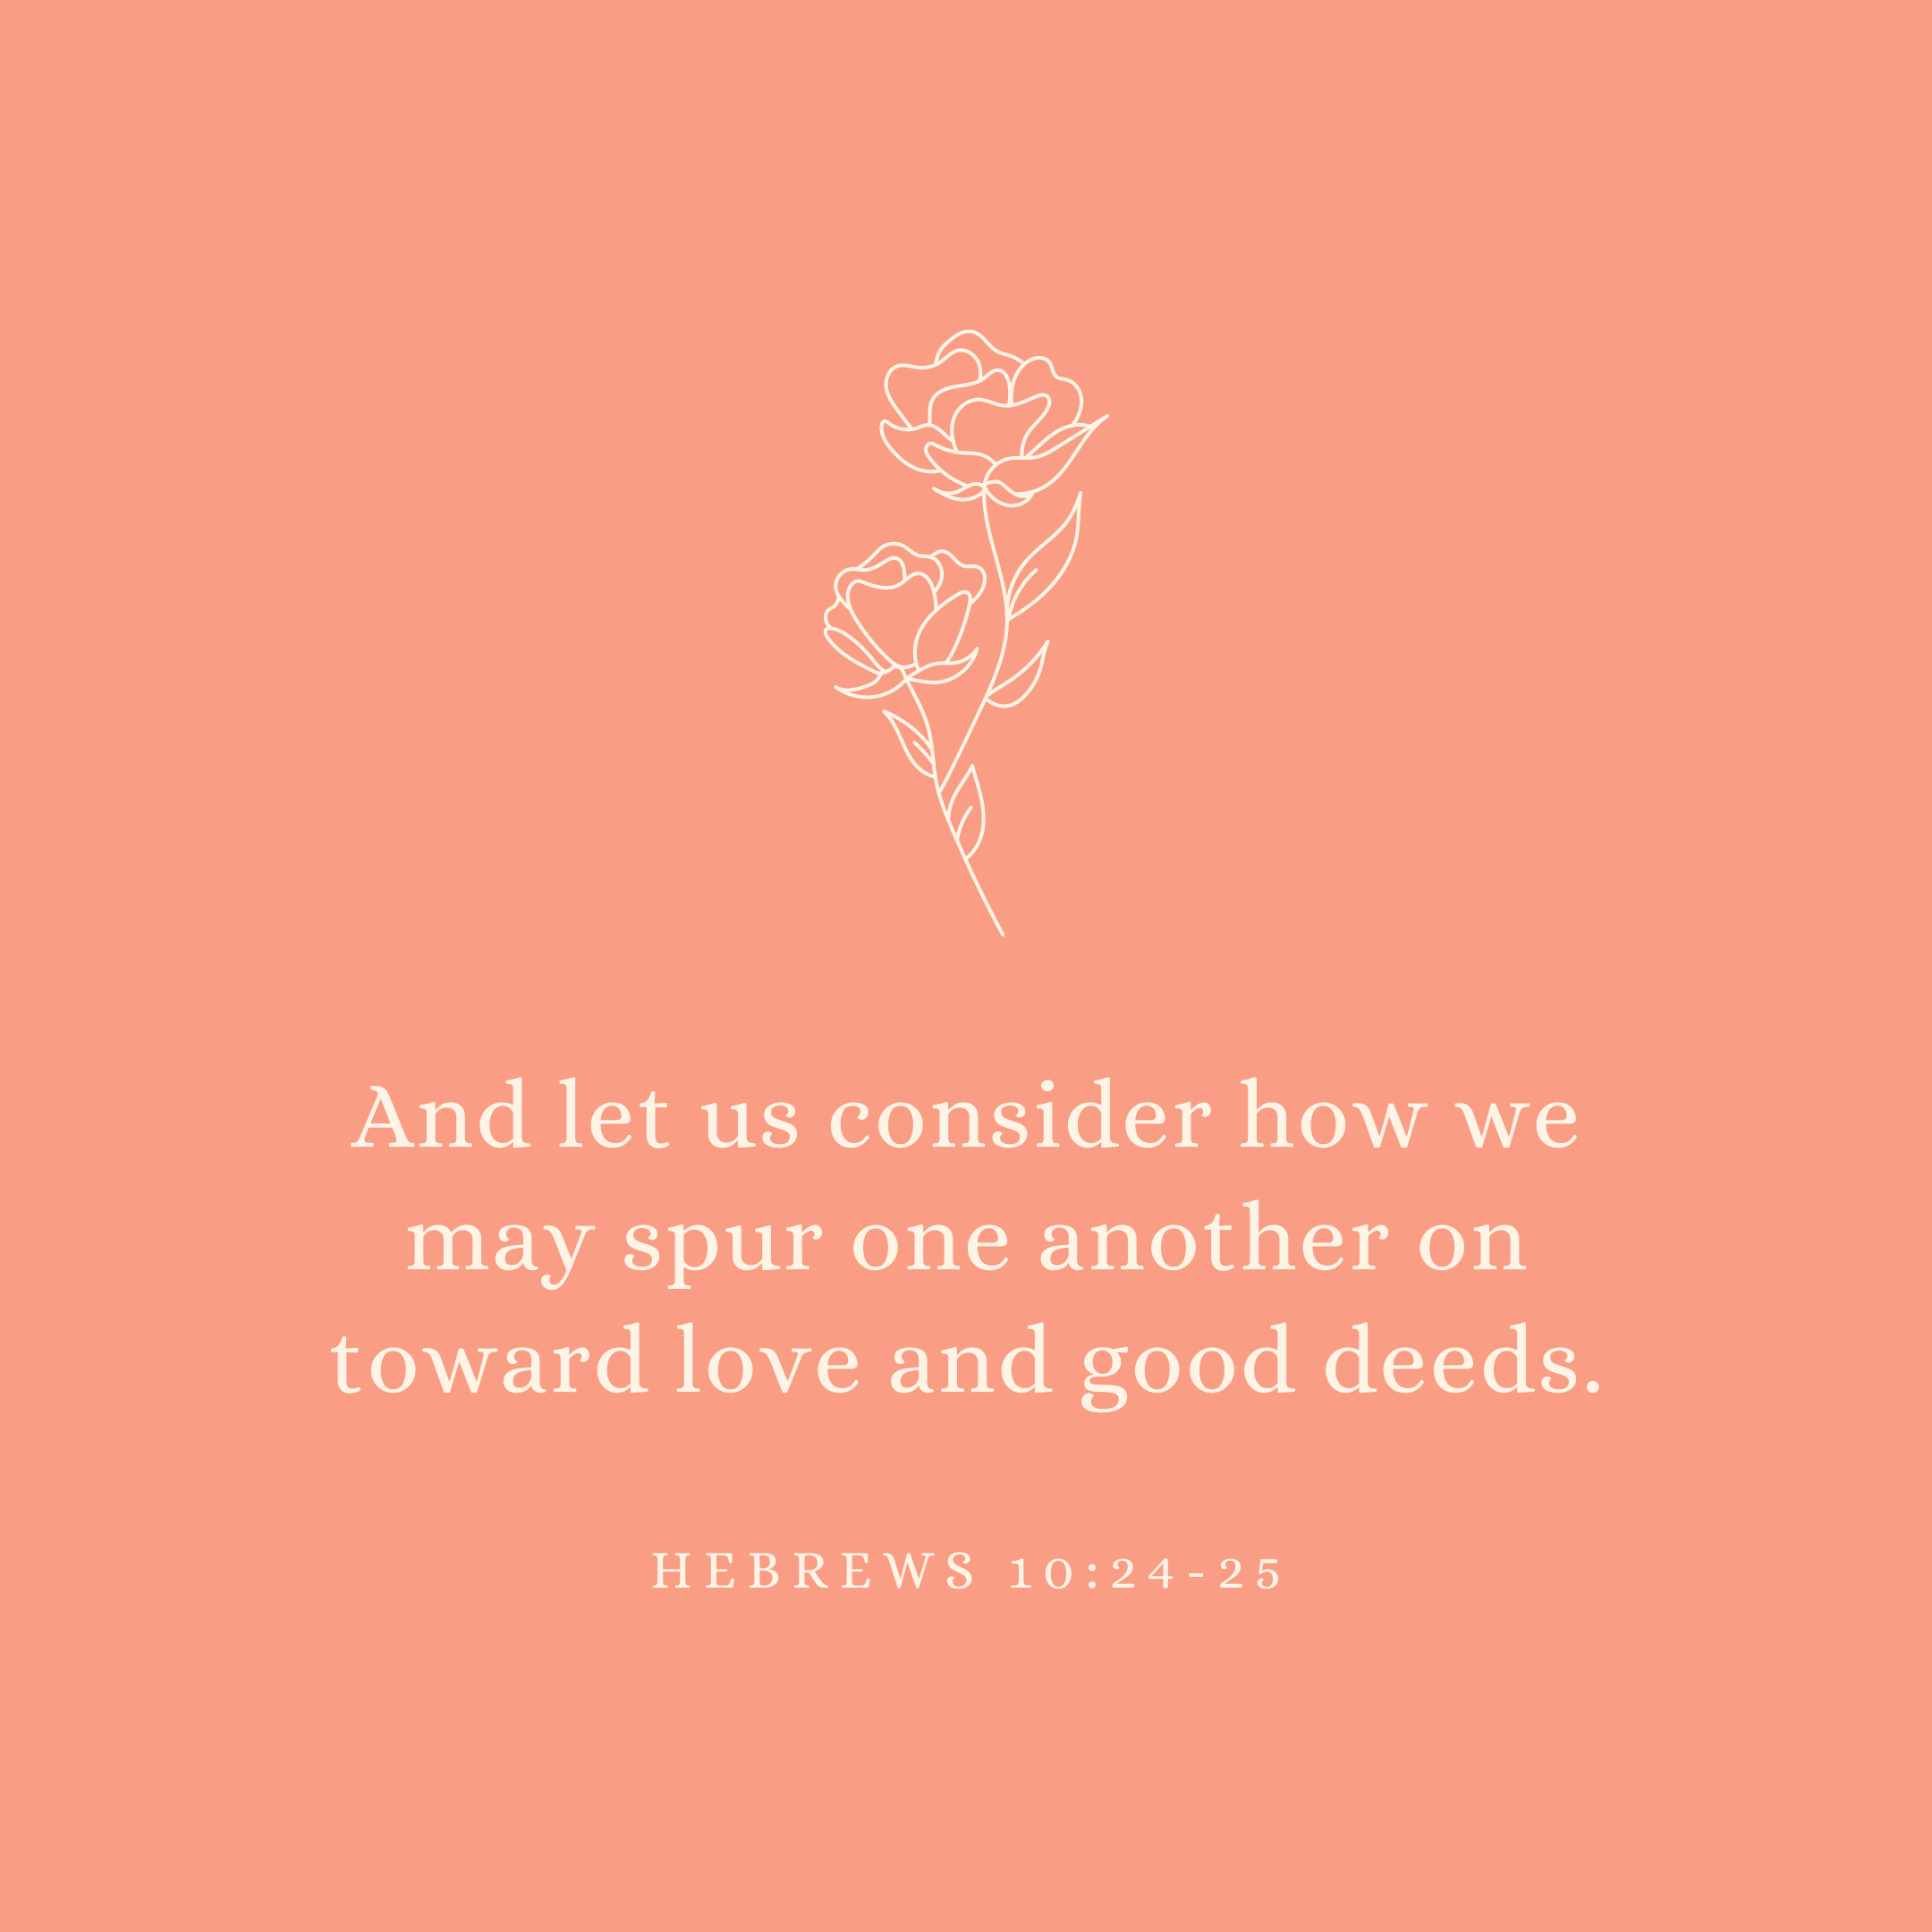 Hebrews 10:24-25 And let us consider how we may spur one another on toward love and good deeds.